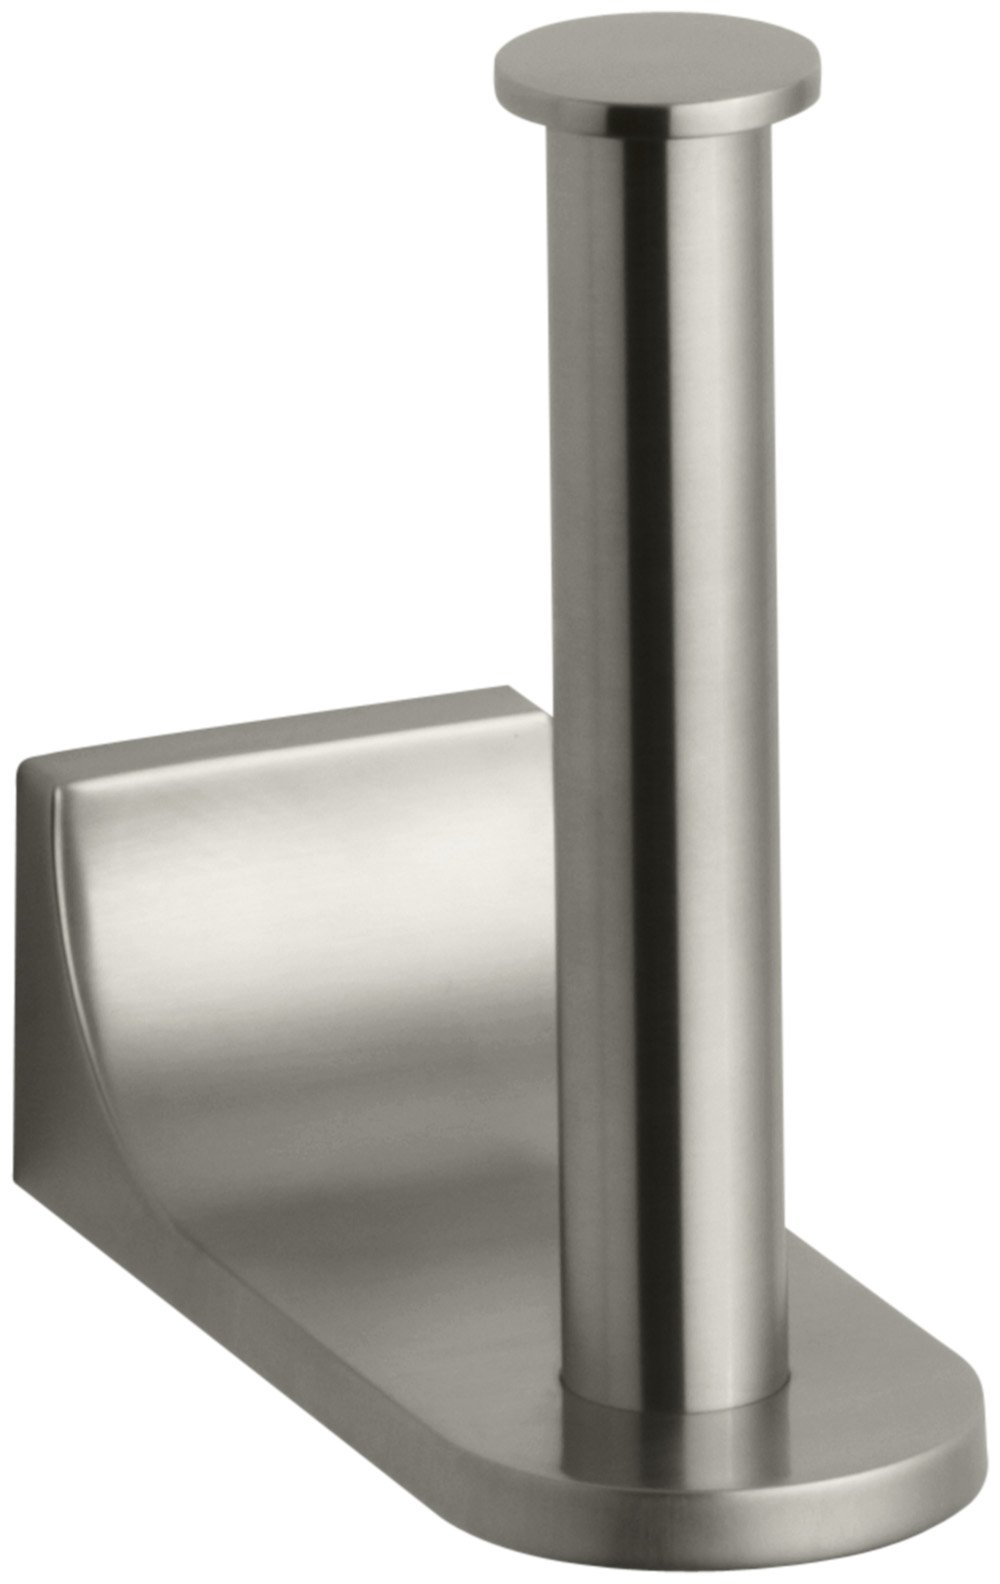 Kohler K-11583-BN Loure Vertical Toilet Tissue Holder, Vibrant Brushed Nickel